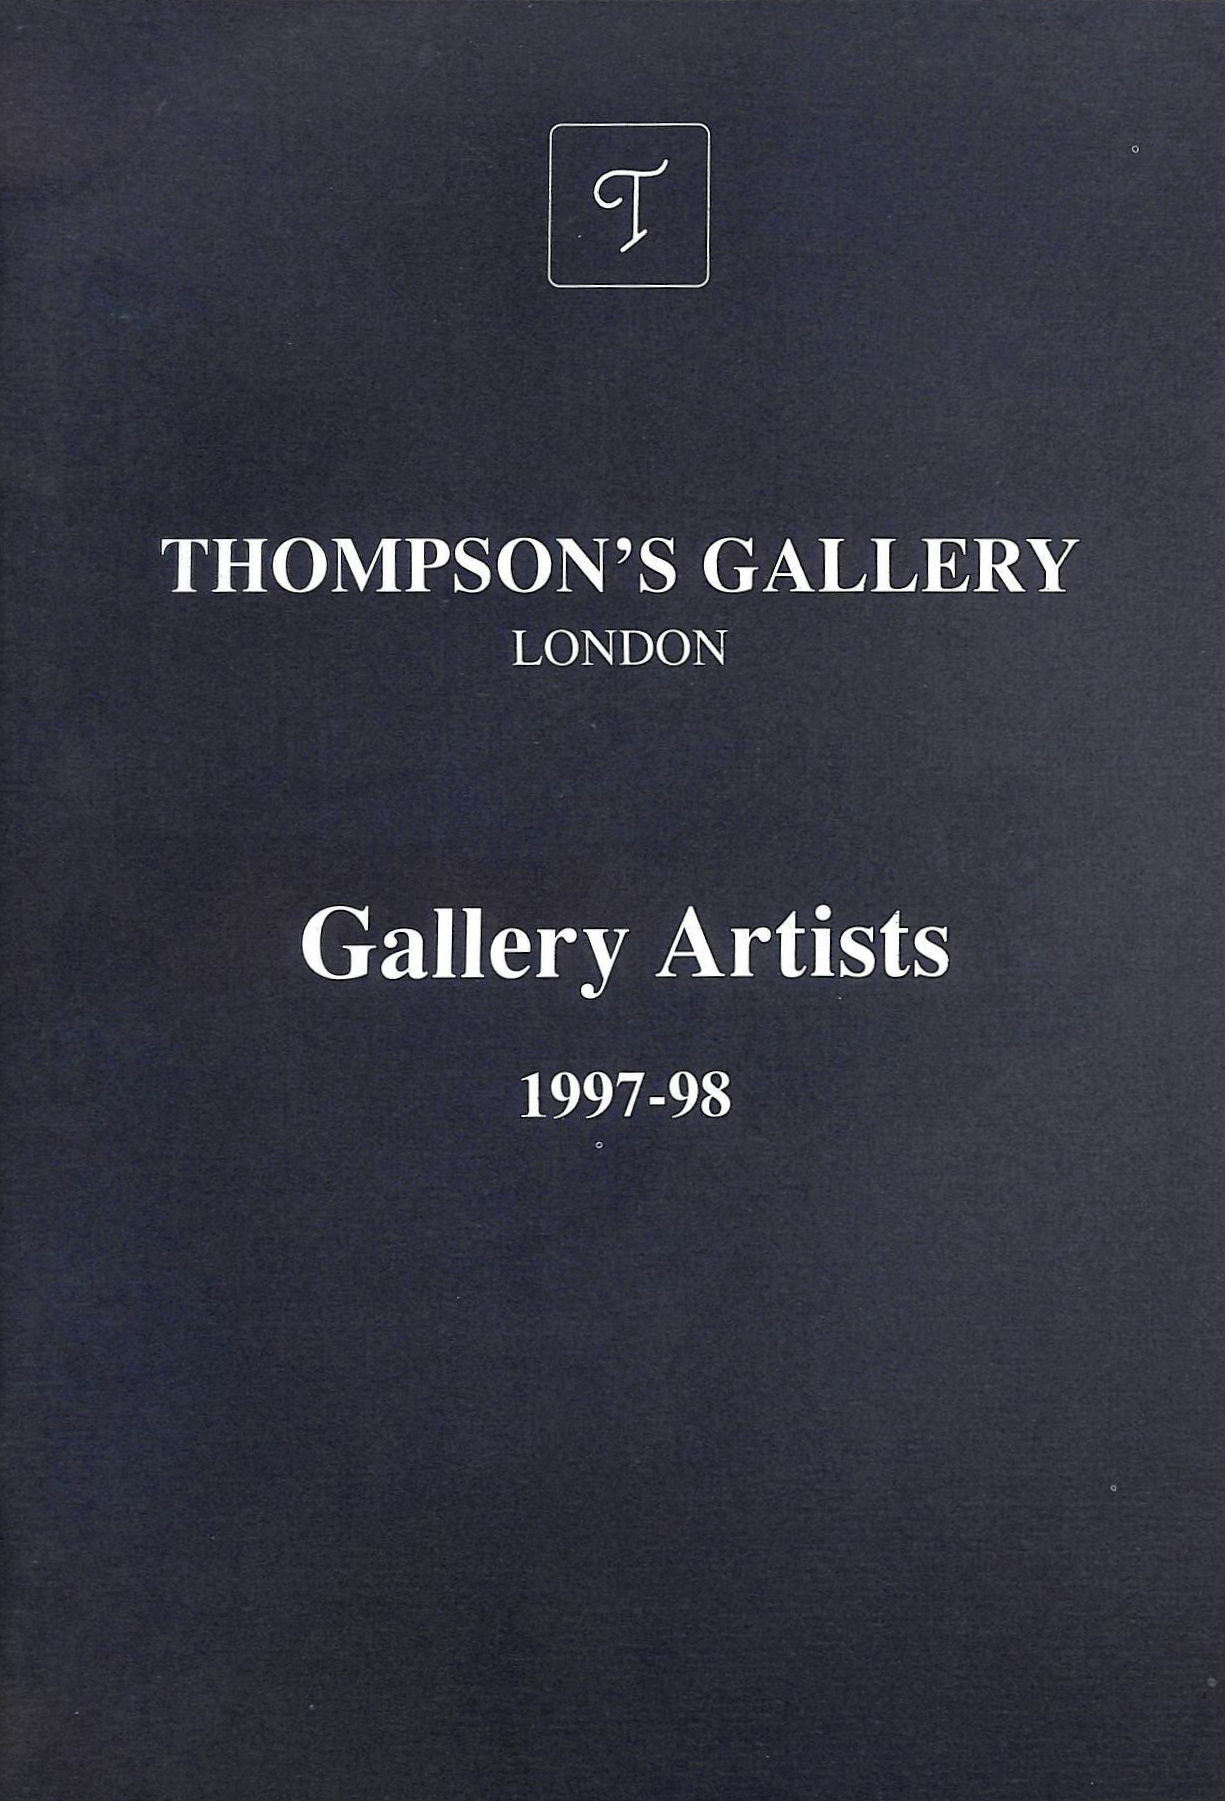 Image for Thompson's Gallery London Gallery Artists 1997-98